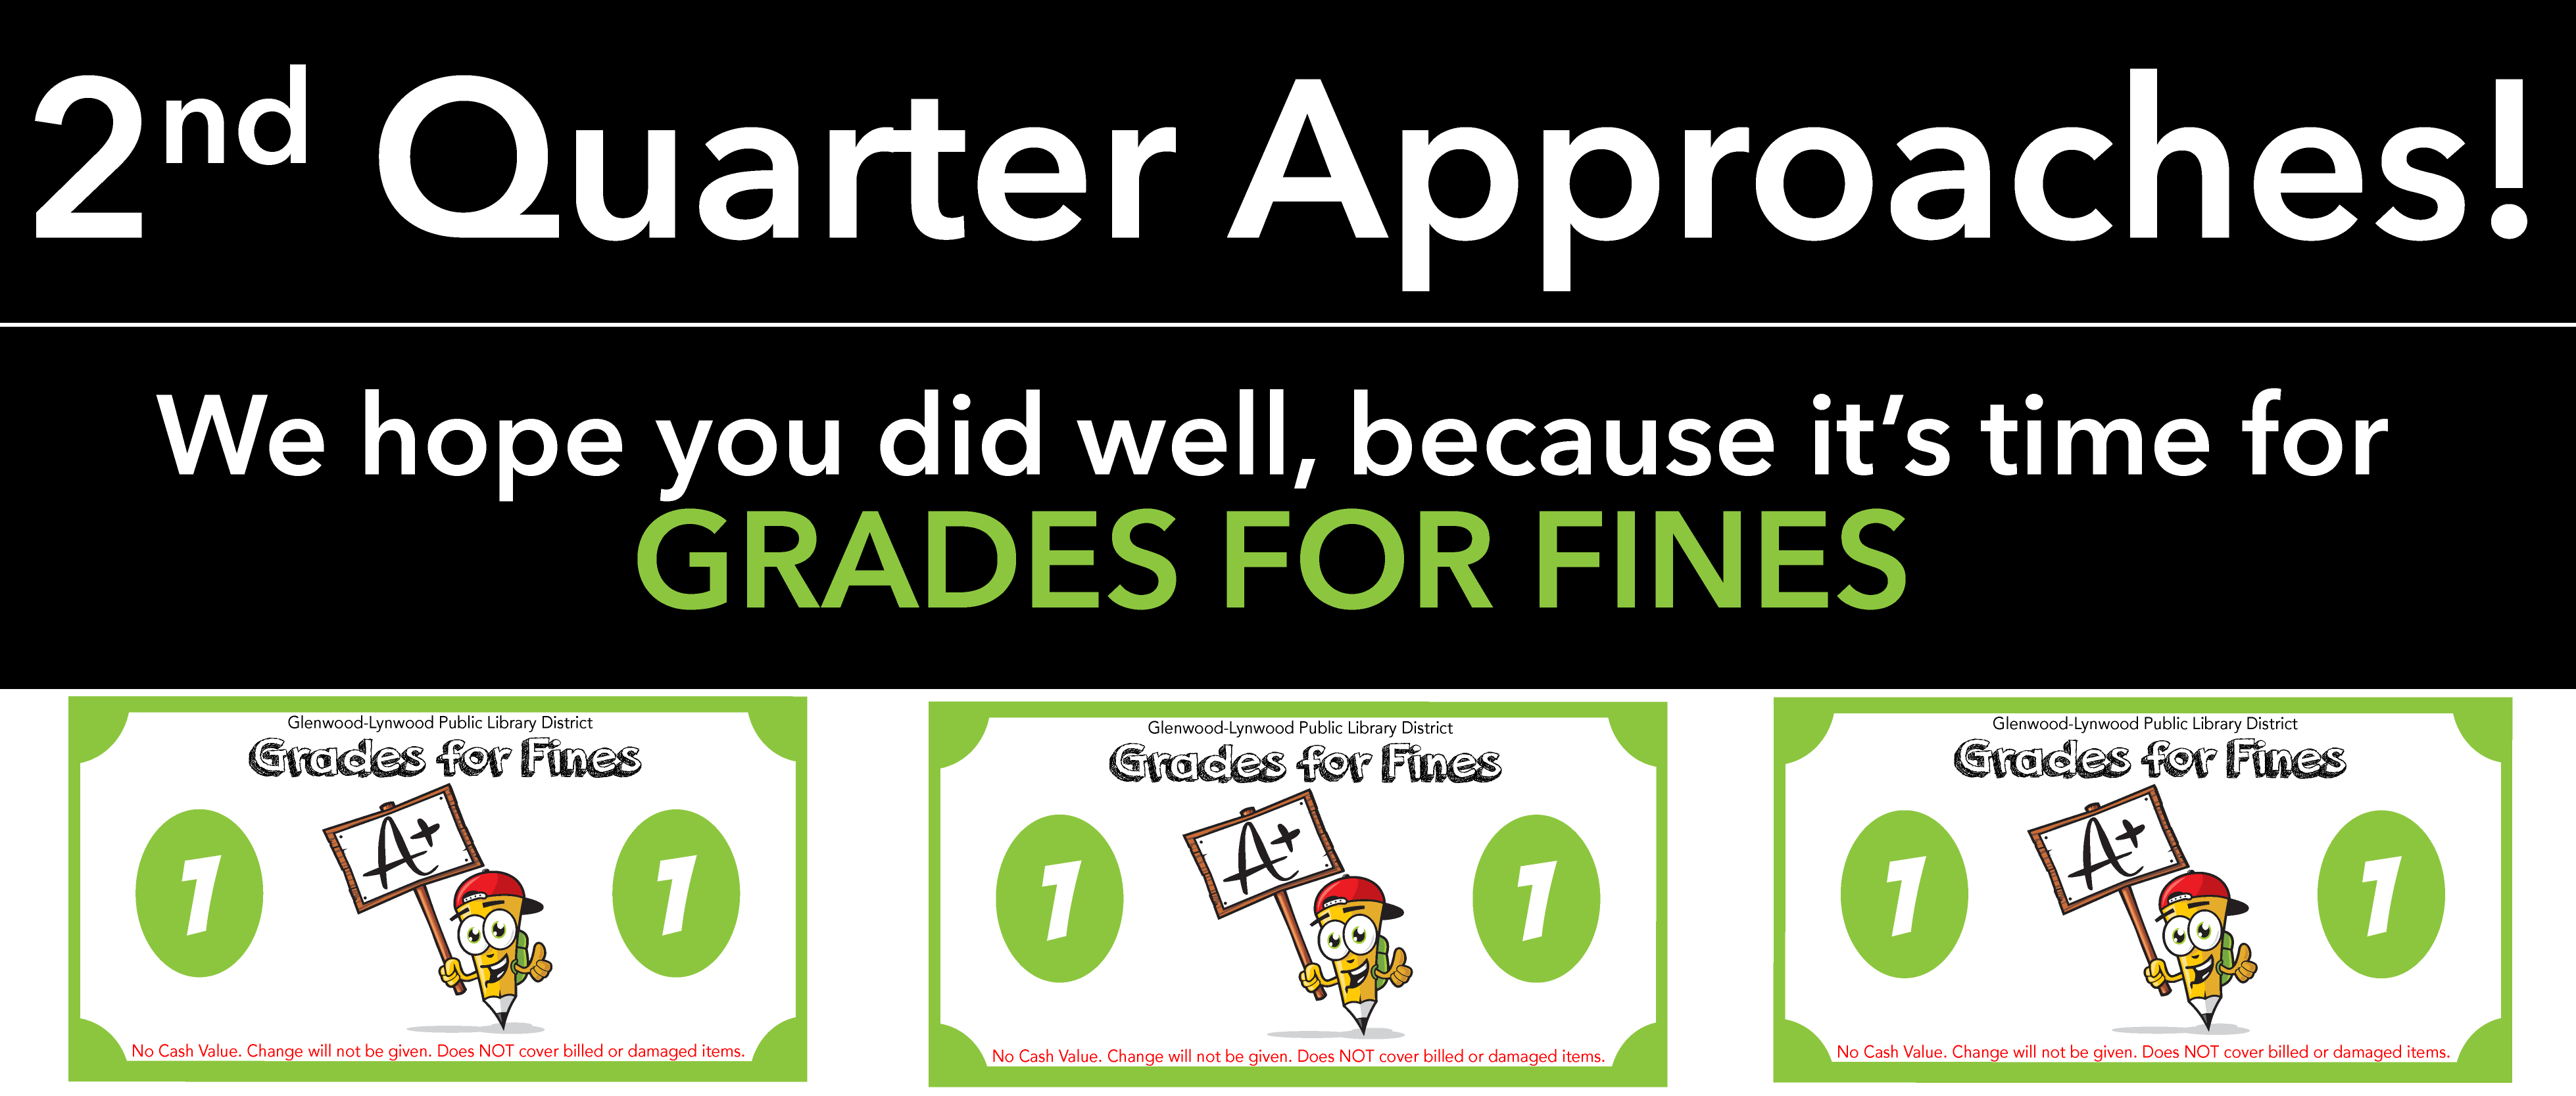 grade-for-fines2-wp